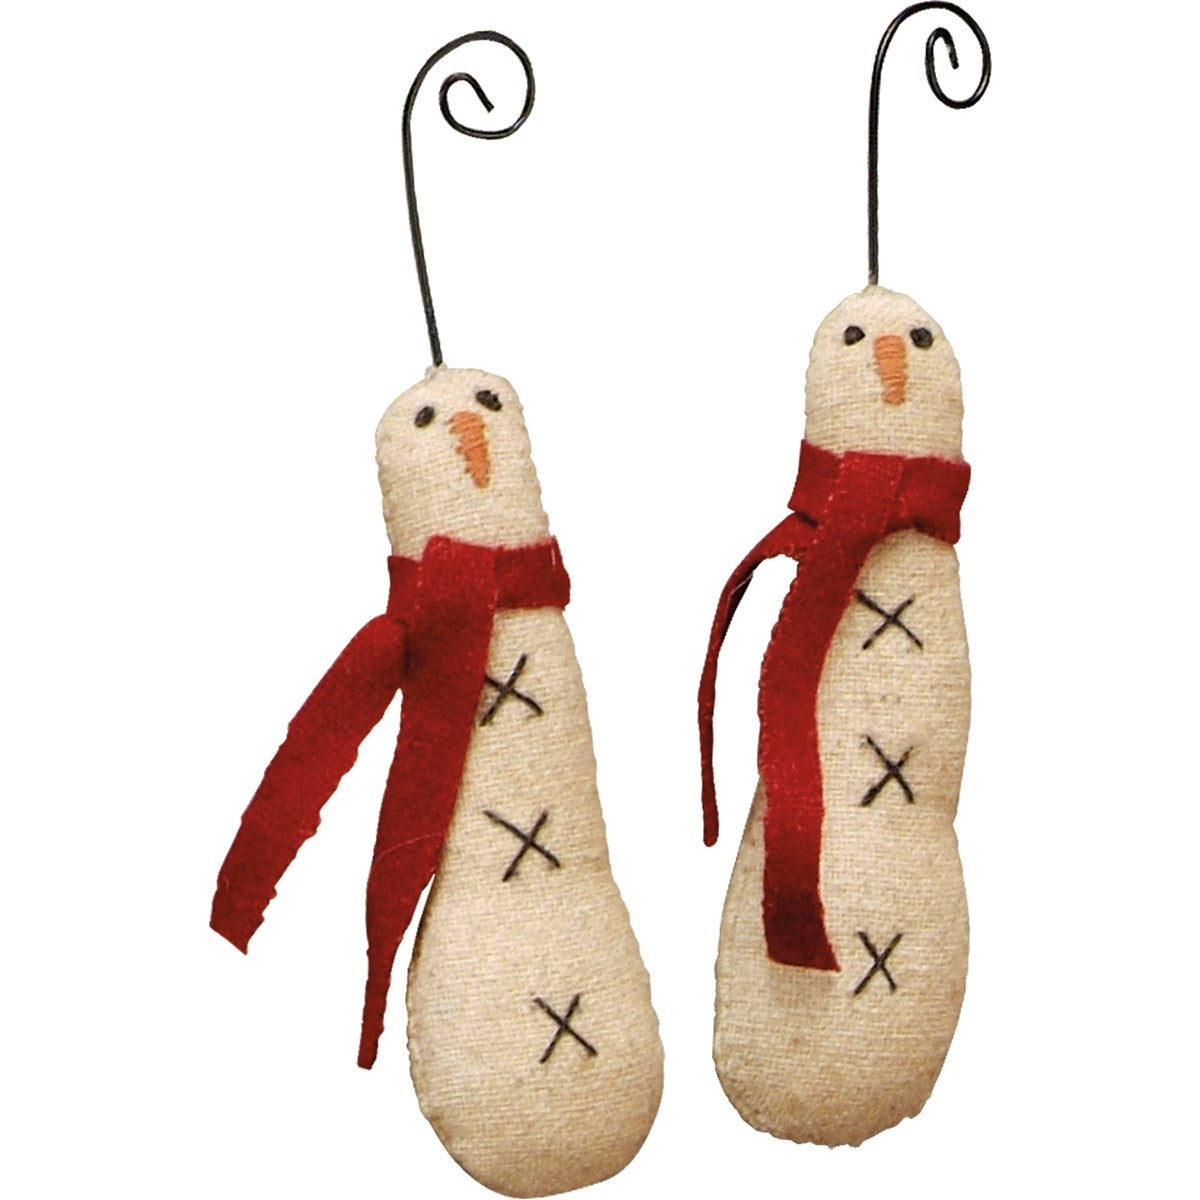 Ornament Set - Skinny Snowman